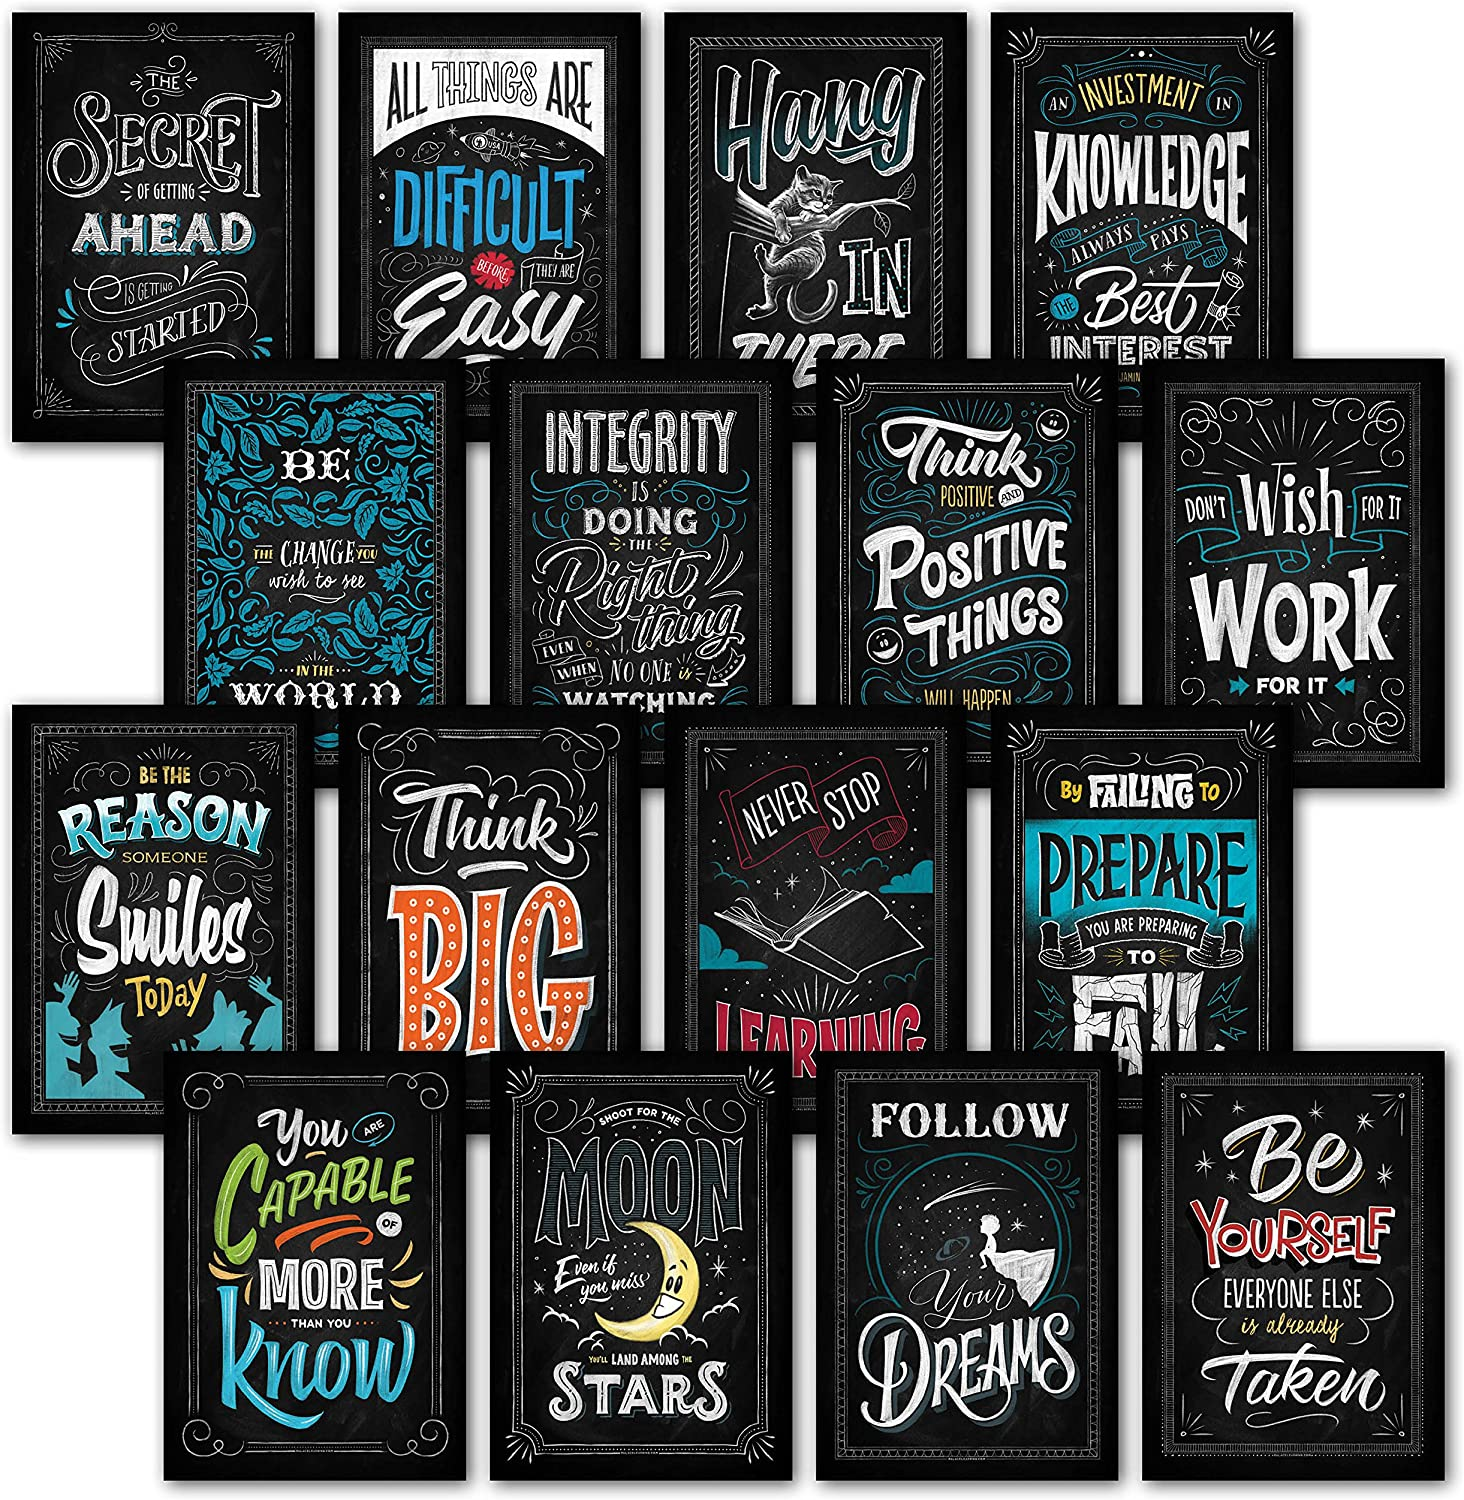 Palace Learning 16 Laminated Motivational Classroom Wall Posters - Inspirational Quotes for Students - Teacher Classroom Decorations 13 x 19 (LAM) 001